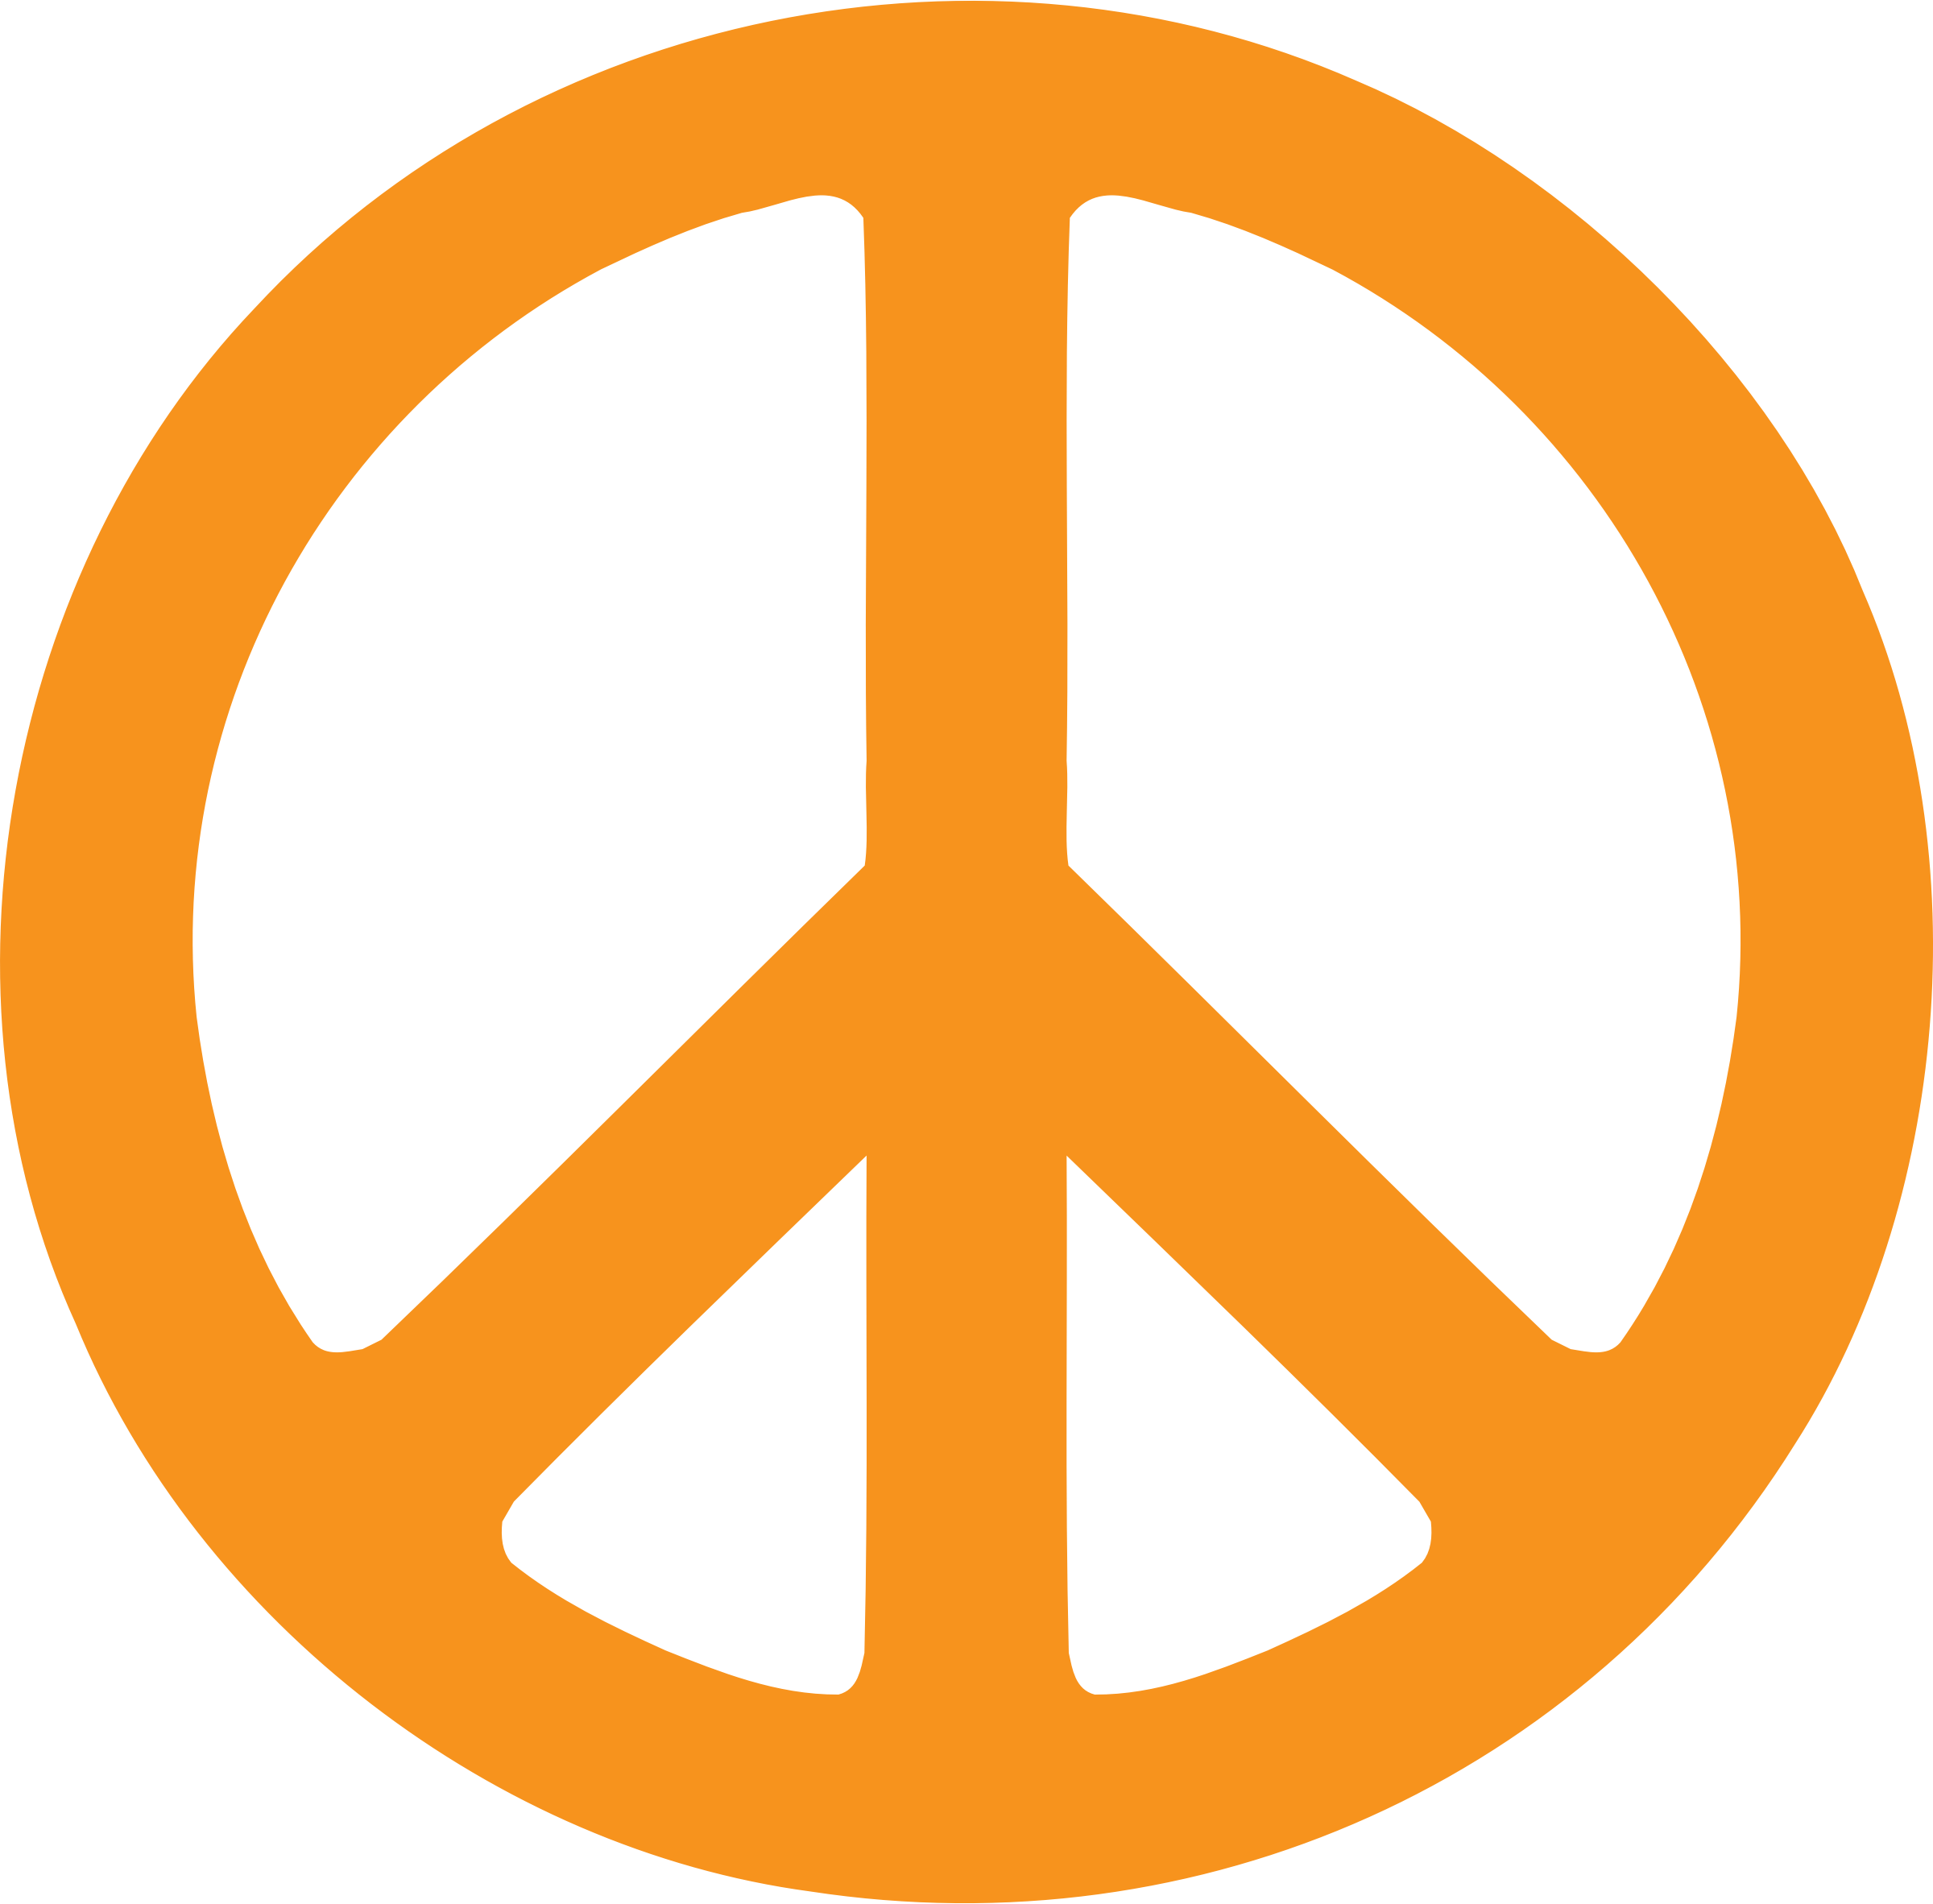 World piece sign clipart jpg free library Peace signs clip art peace signs clipart fans – Gclipart.com jpg free library